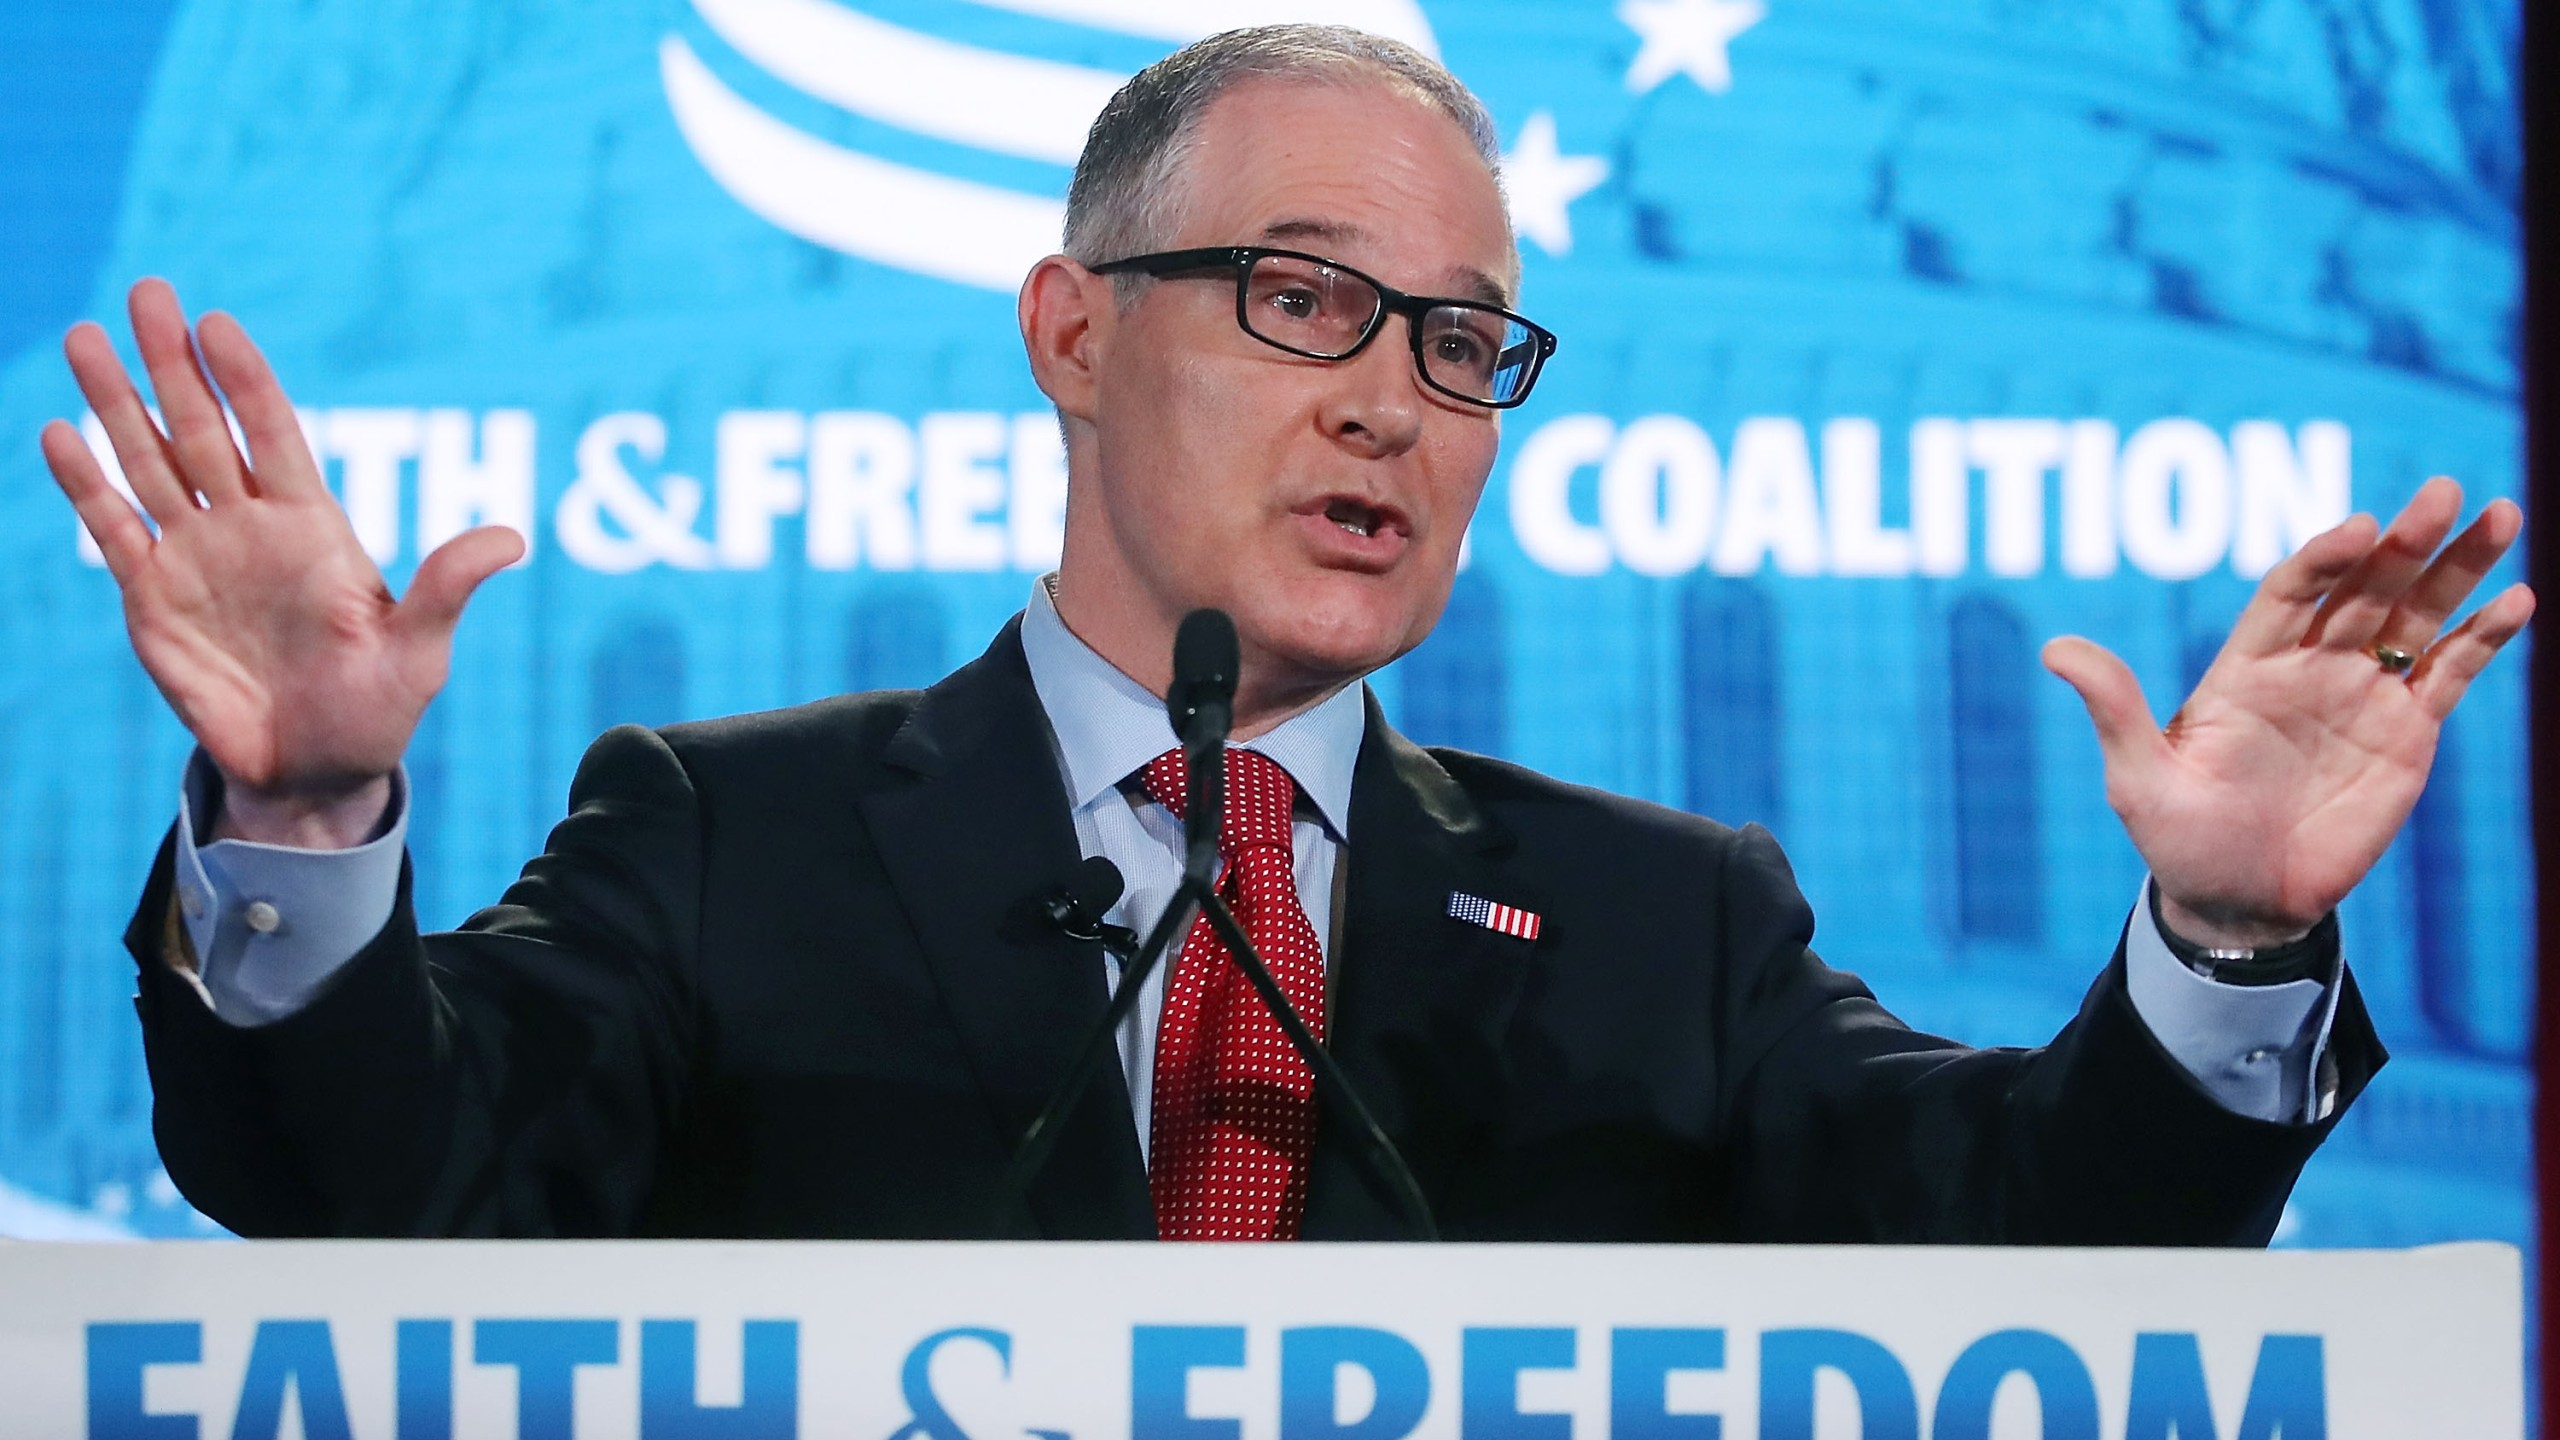 EPA Administrator Scott Pruitt speaks at the Faith and Freedom Coalition Road to Majority Policy Conference, at the Omni Shoreham Hotel, on June 8, 2018, in Washington, D.C. (Credit: Mark Wilson/Getty Images)